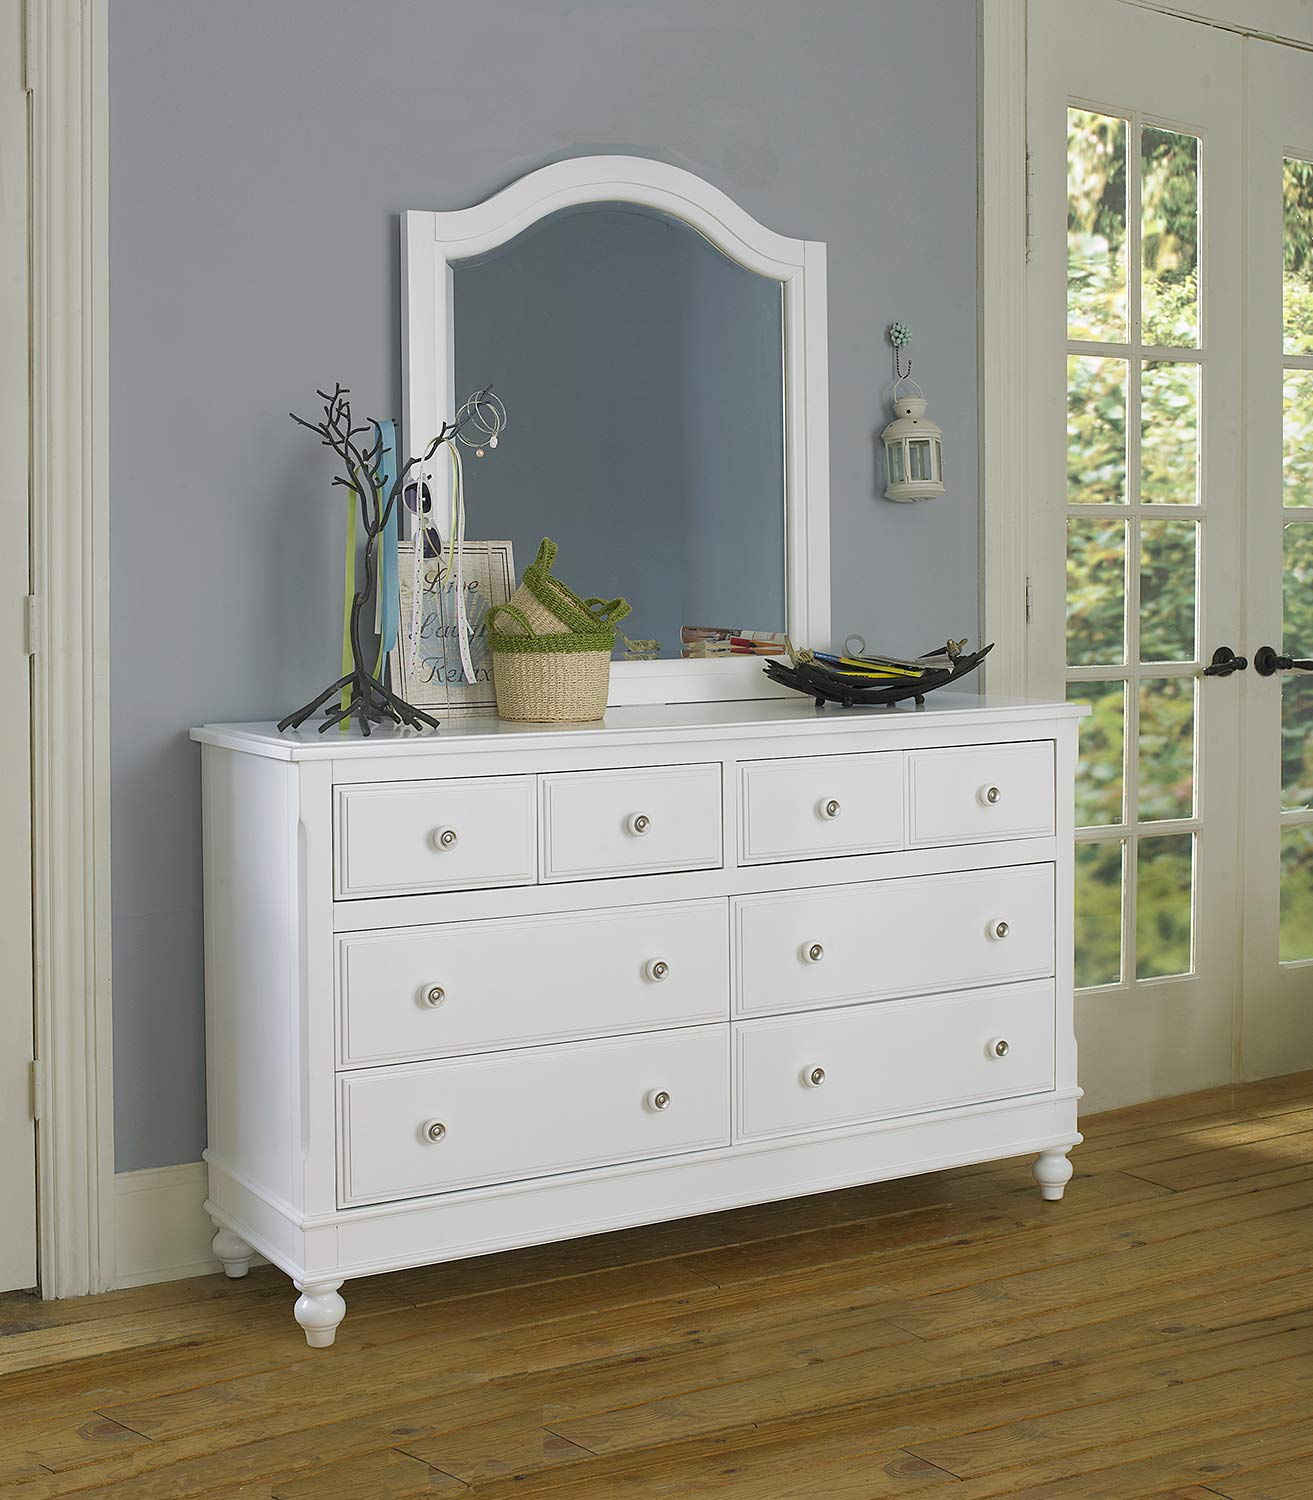 NE Kids Lake House 8 Drawer Dresser with Mirror - White